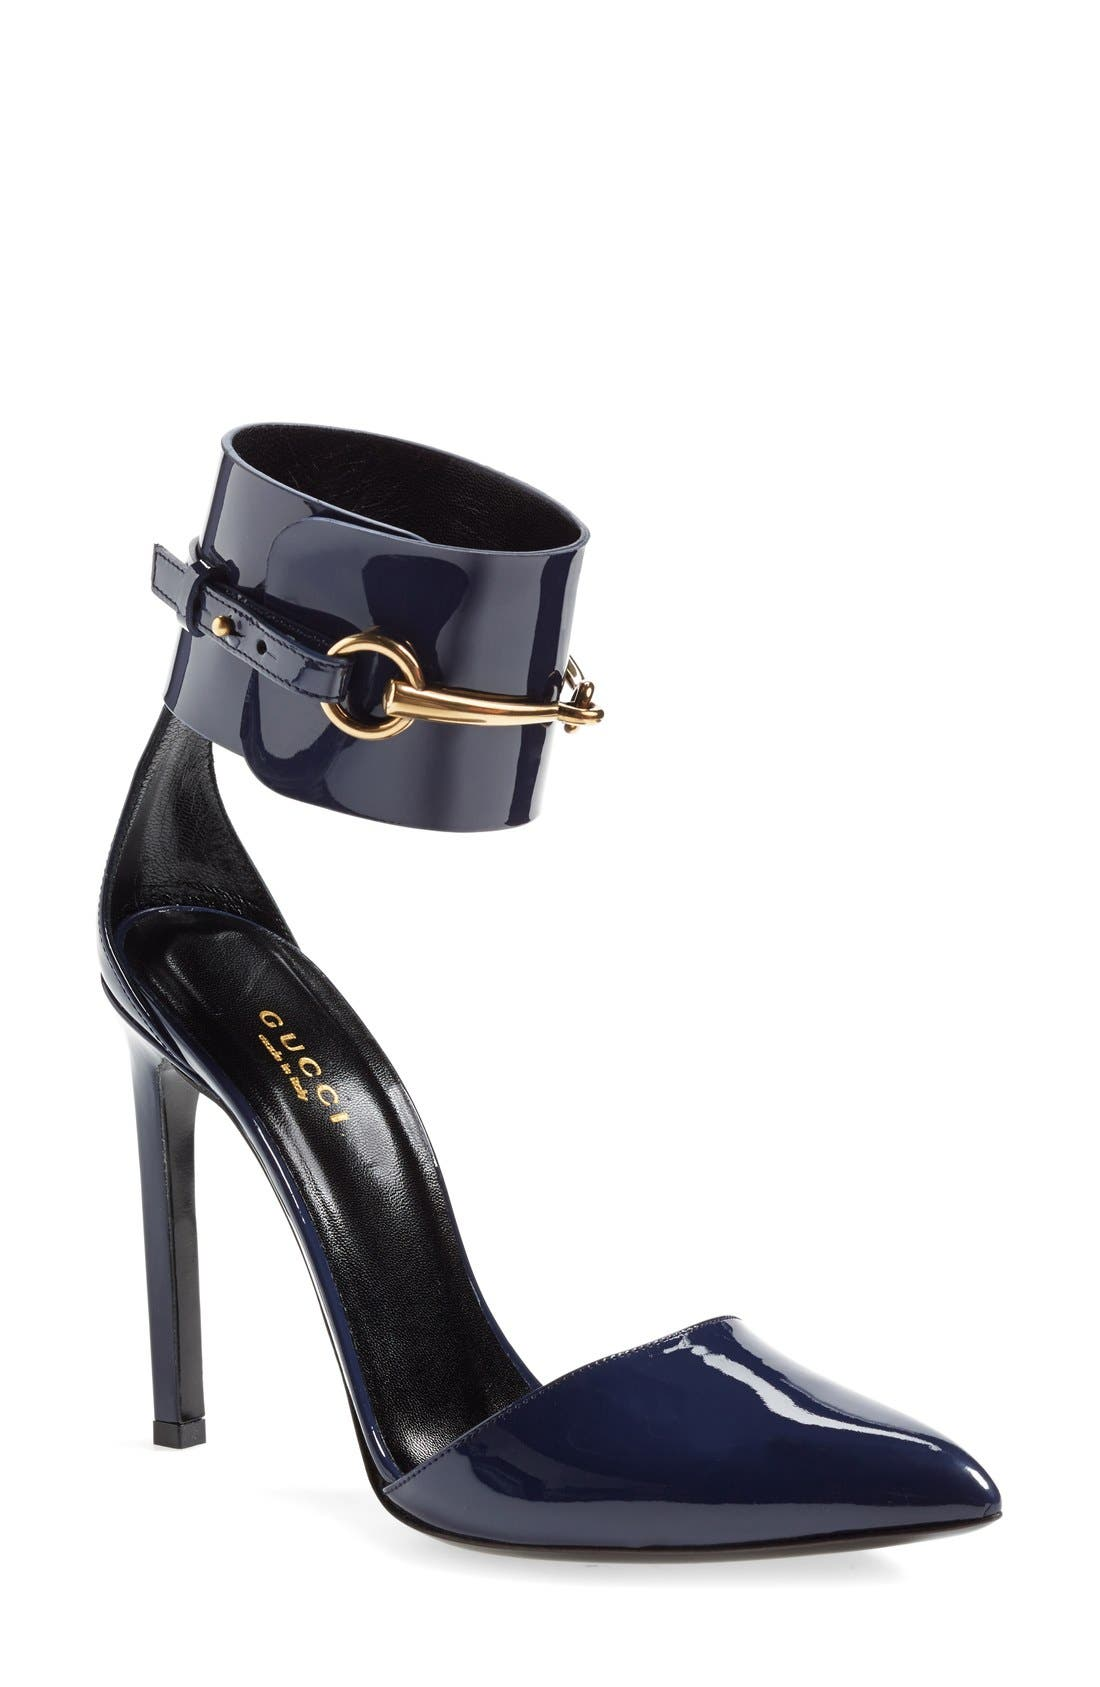 Alternate Image 1 Selected - Gucci 'Ursula' Ankle Cuff Pointy Toe Pump